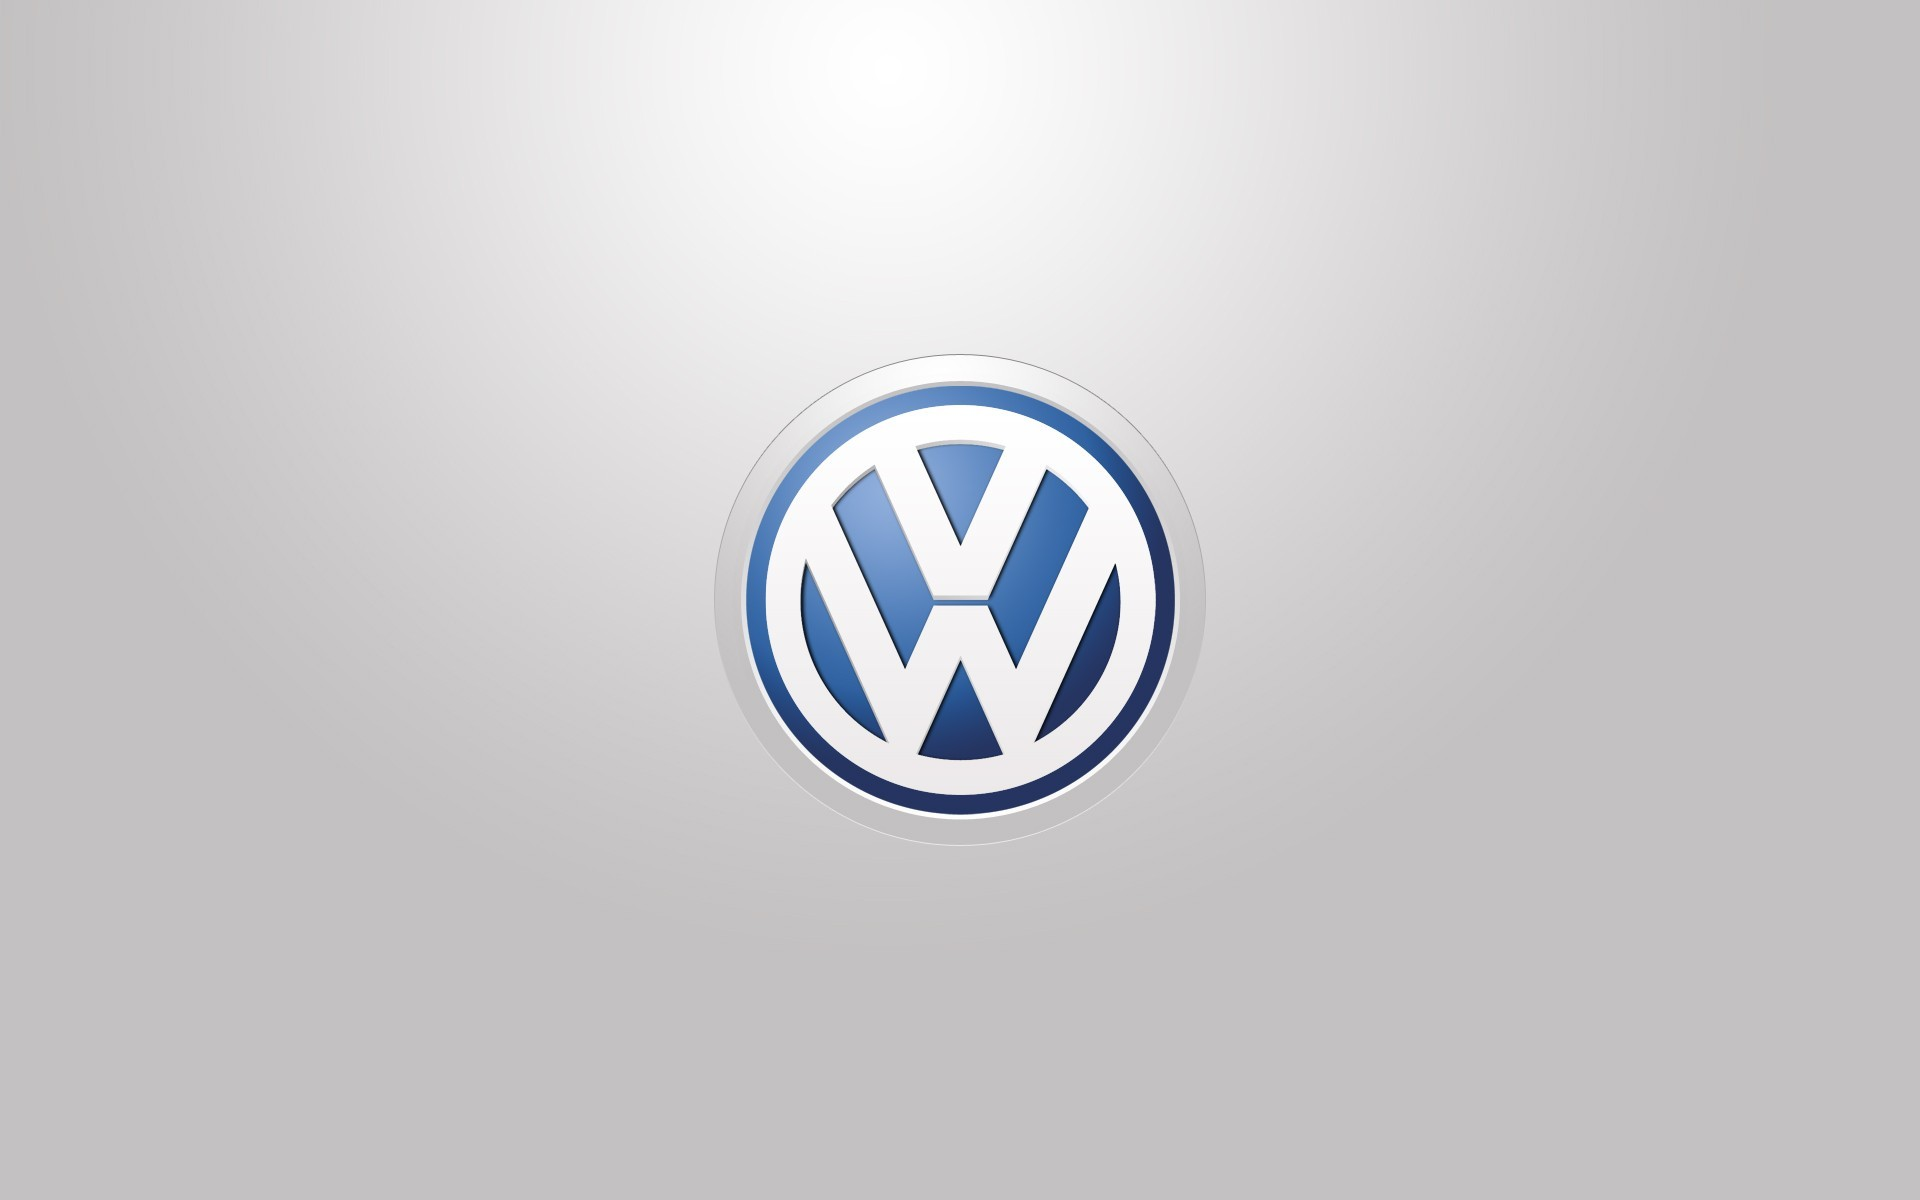 Volkswagen logos HD Wallpaper